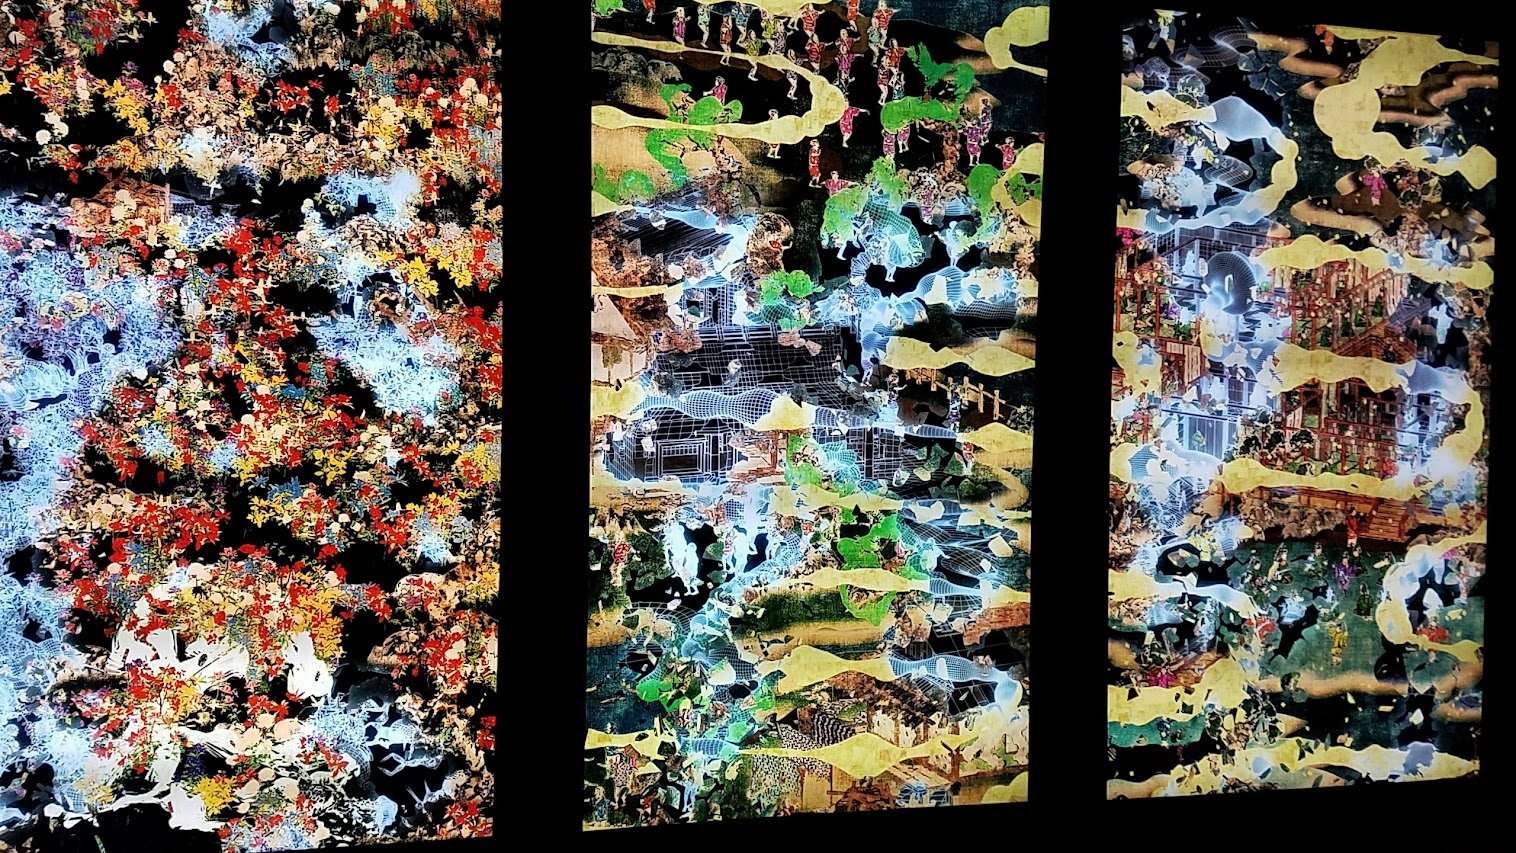 Flower and Corpse Glitch Set of 12 as part of Pace Art + Technology exhibit Living Digital Spaces and Future Parks. The work consists of 12 film stories based on the themes of civilization and nature, collision, circulation, symbiosis. The surface of Flower and Corpse Glitch Set of 12 disintegrates to reveal the hidden underside of the animation.